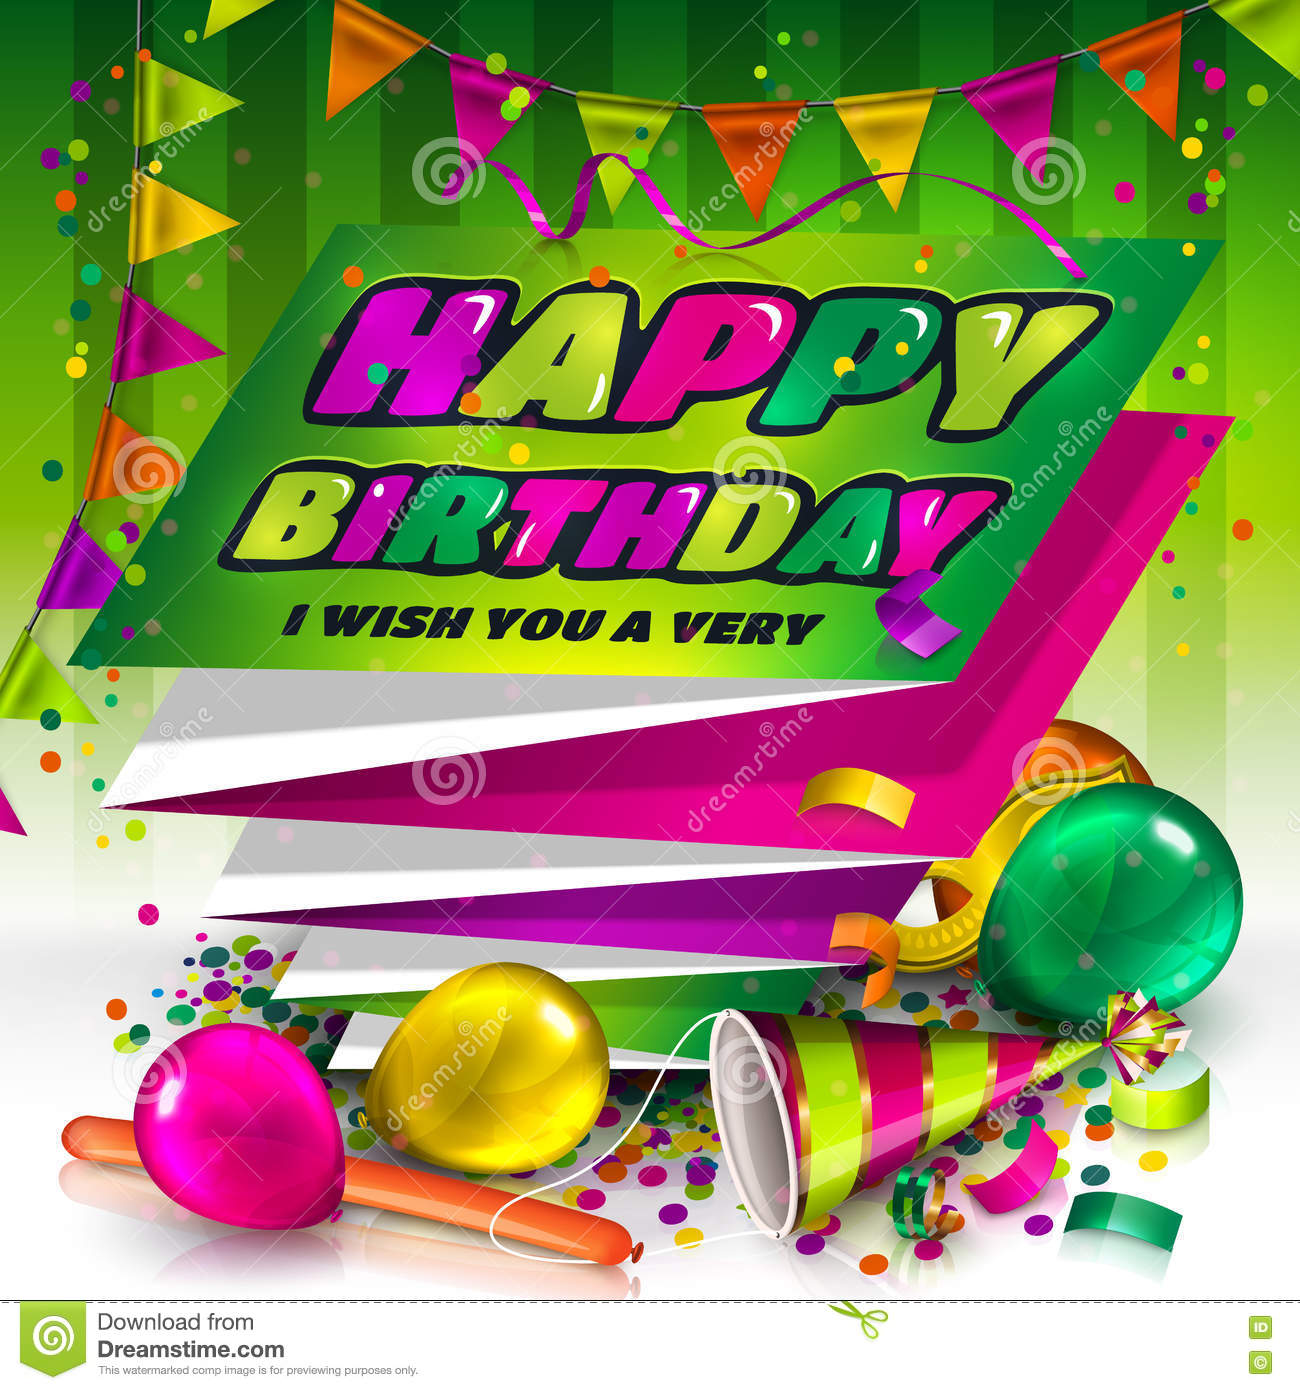 Happy birthday greeting card. Text on folded harmonica paper. Colorful balloons, hat, carnival mask, confetti and